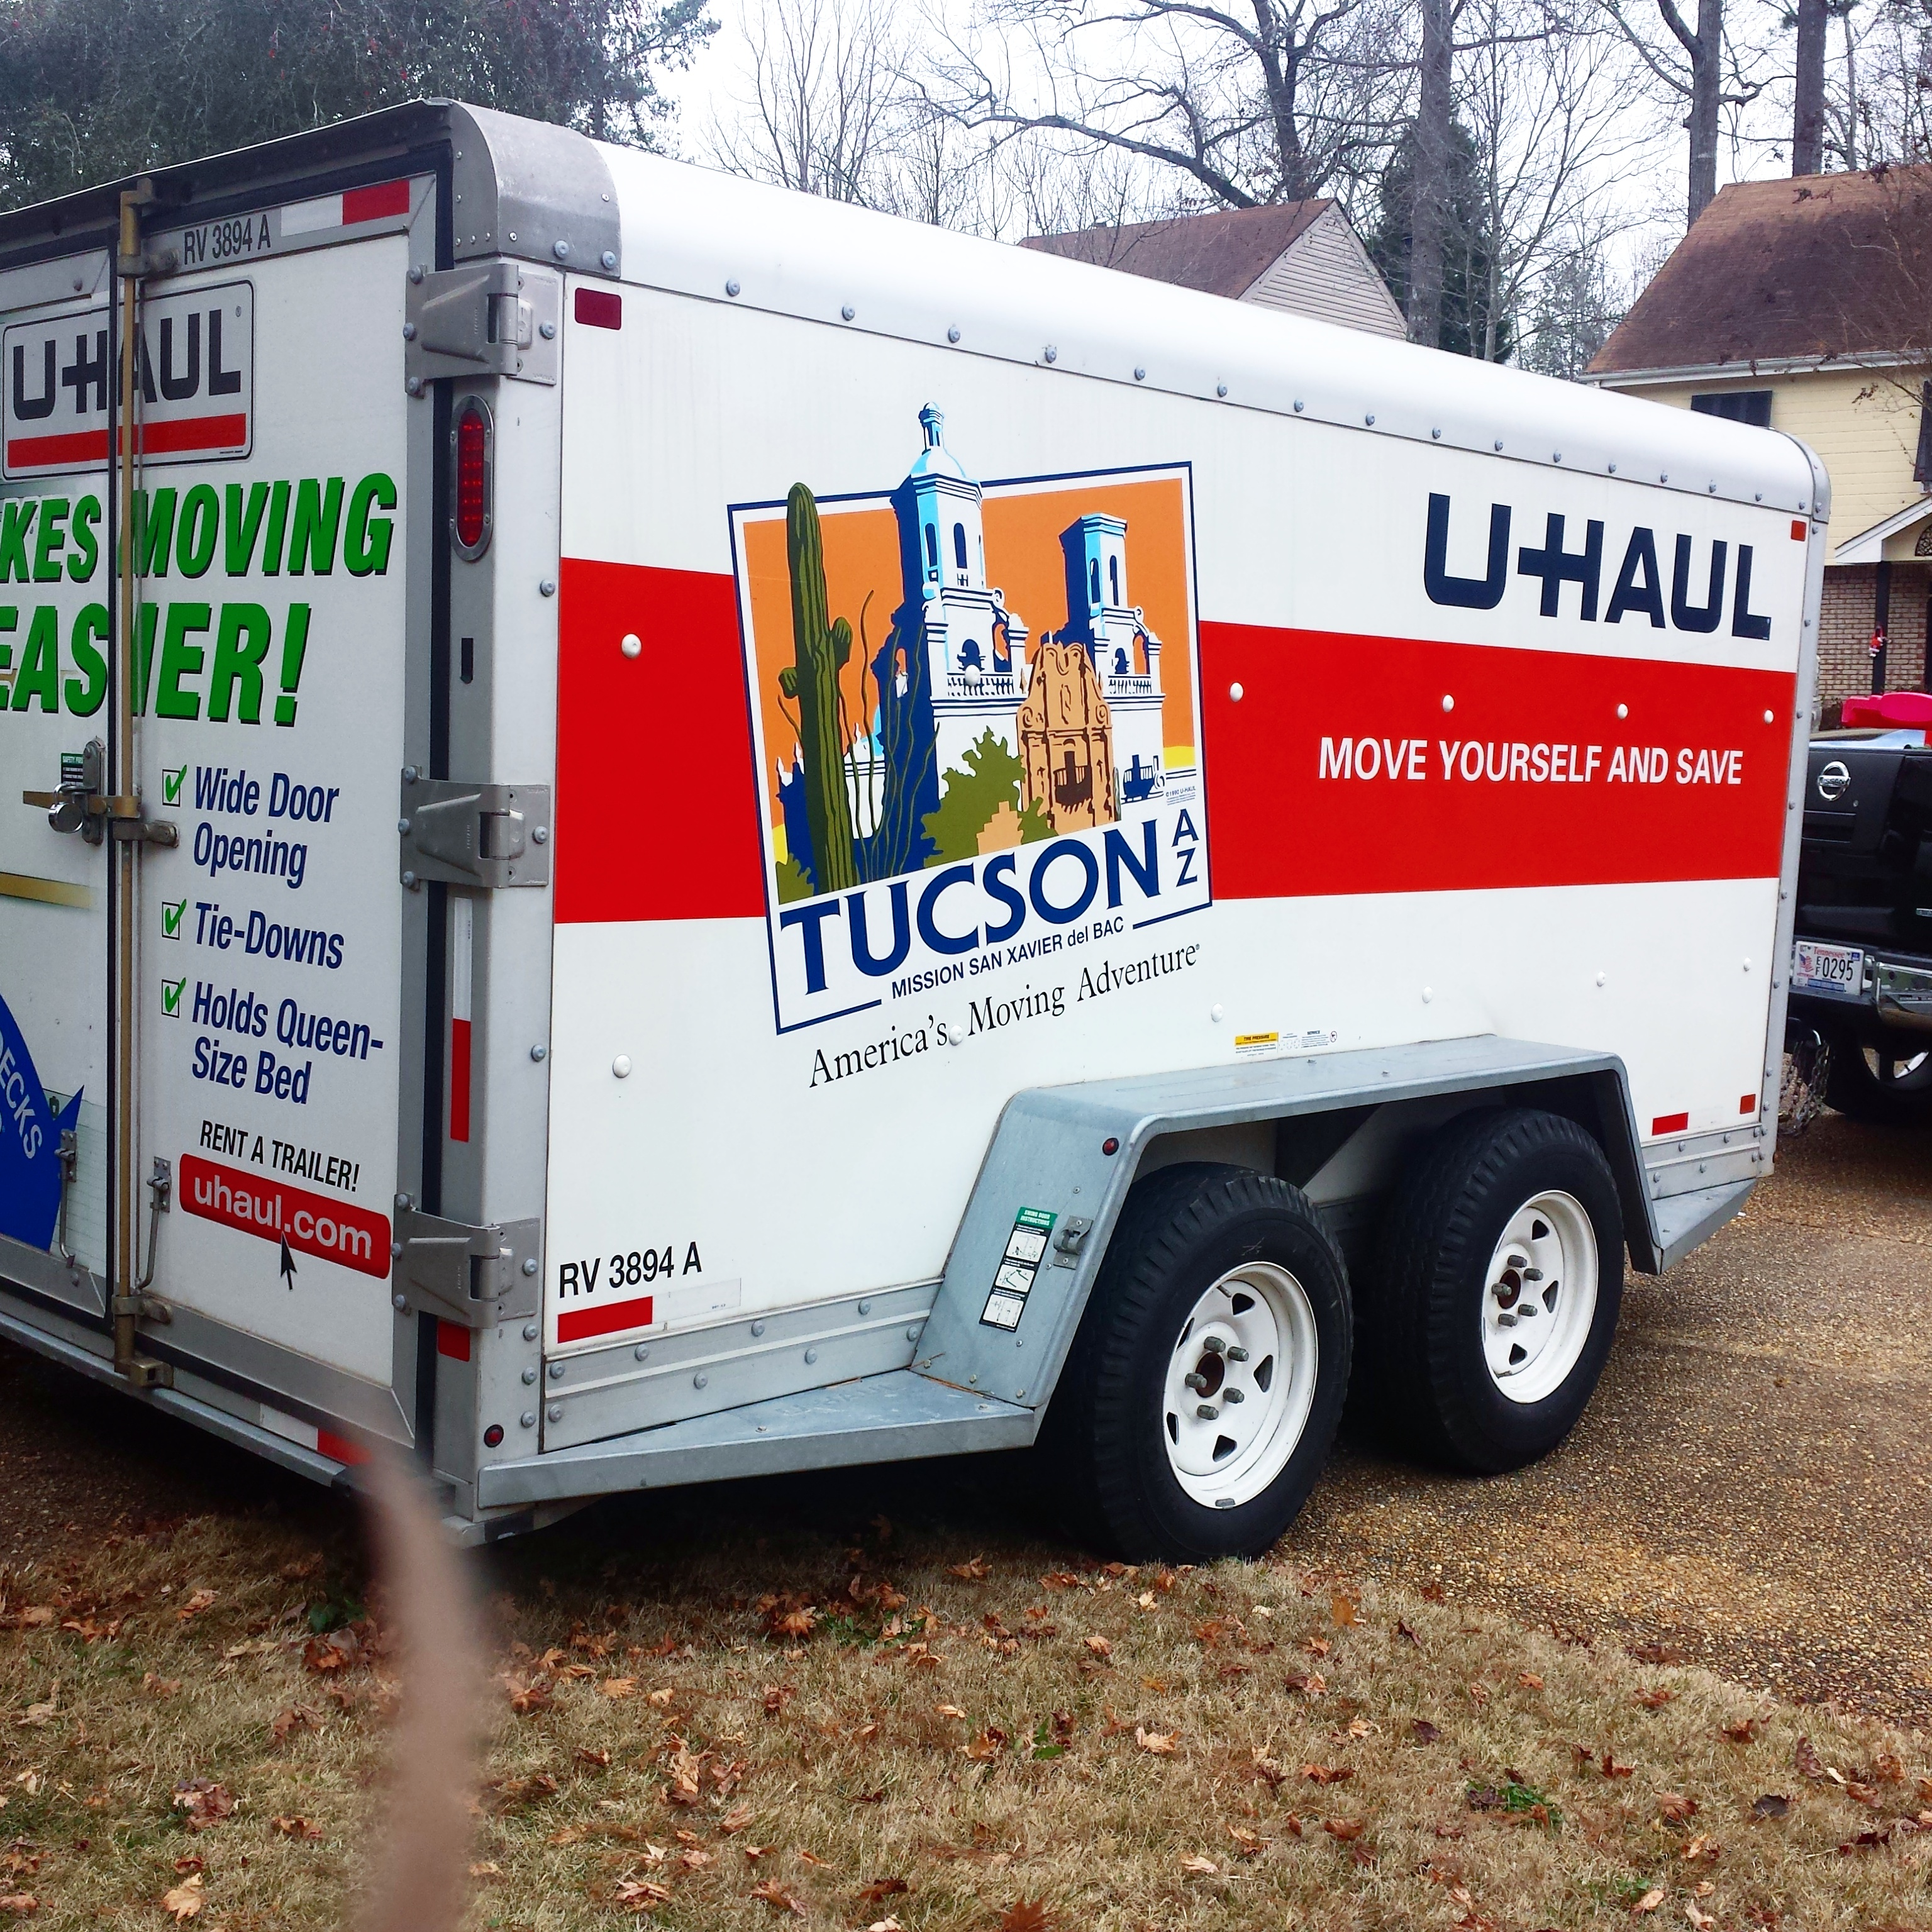 U Haul Rental Collierville Tn Of course we would pick the